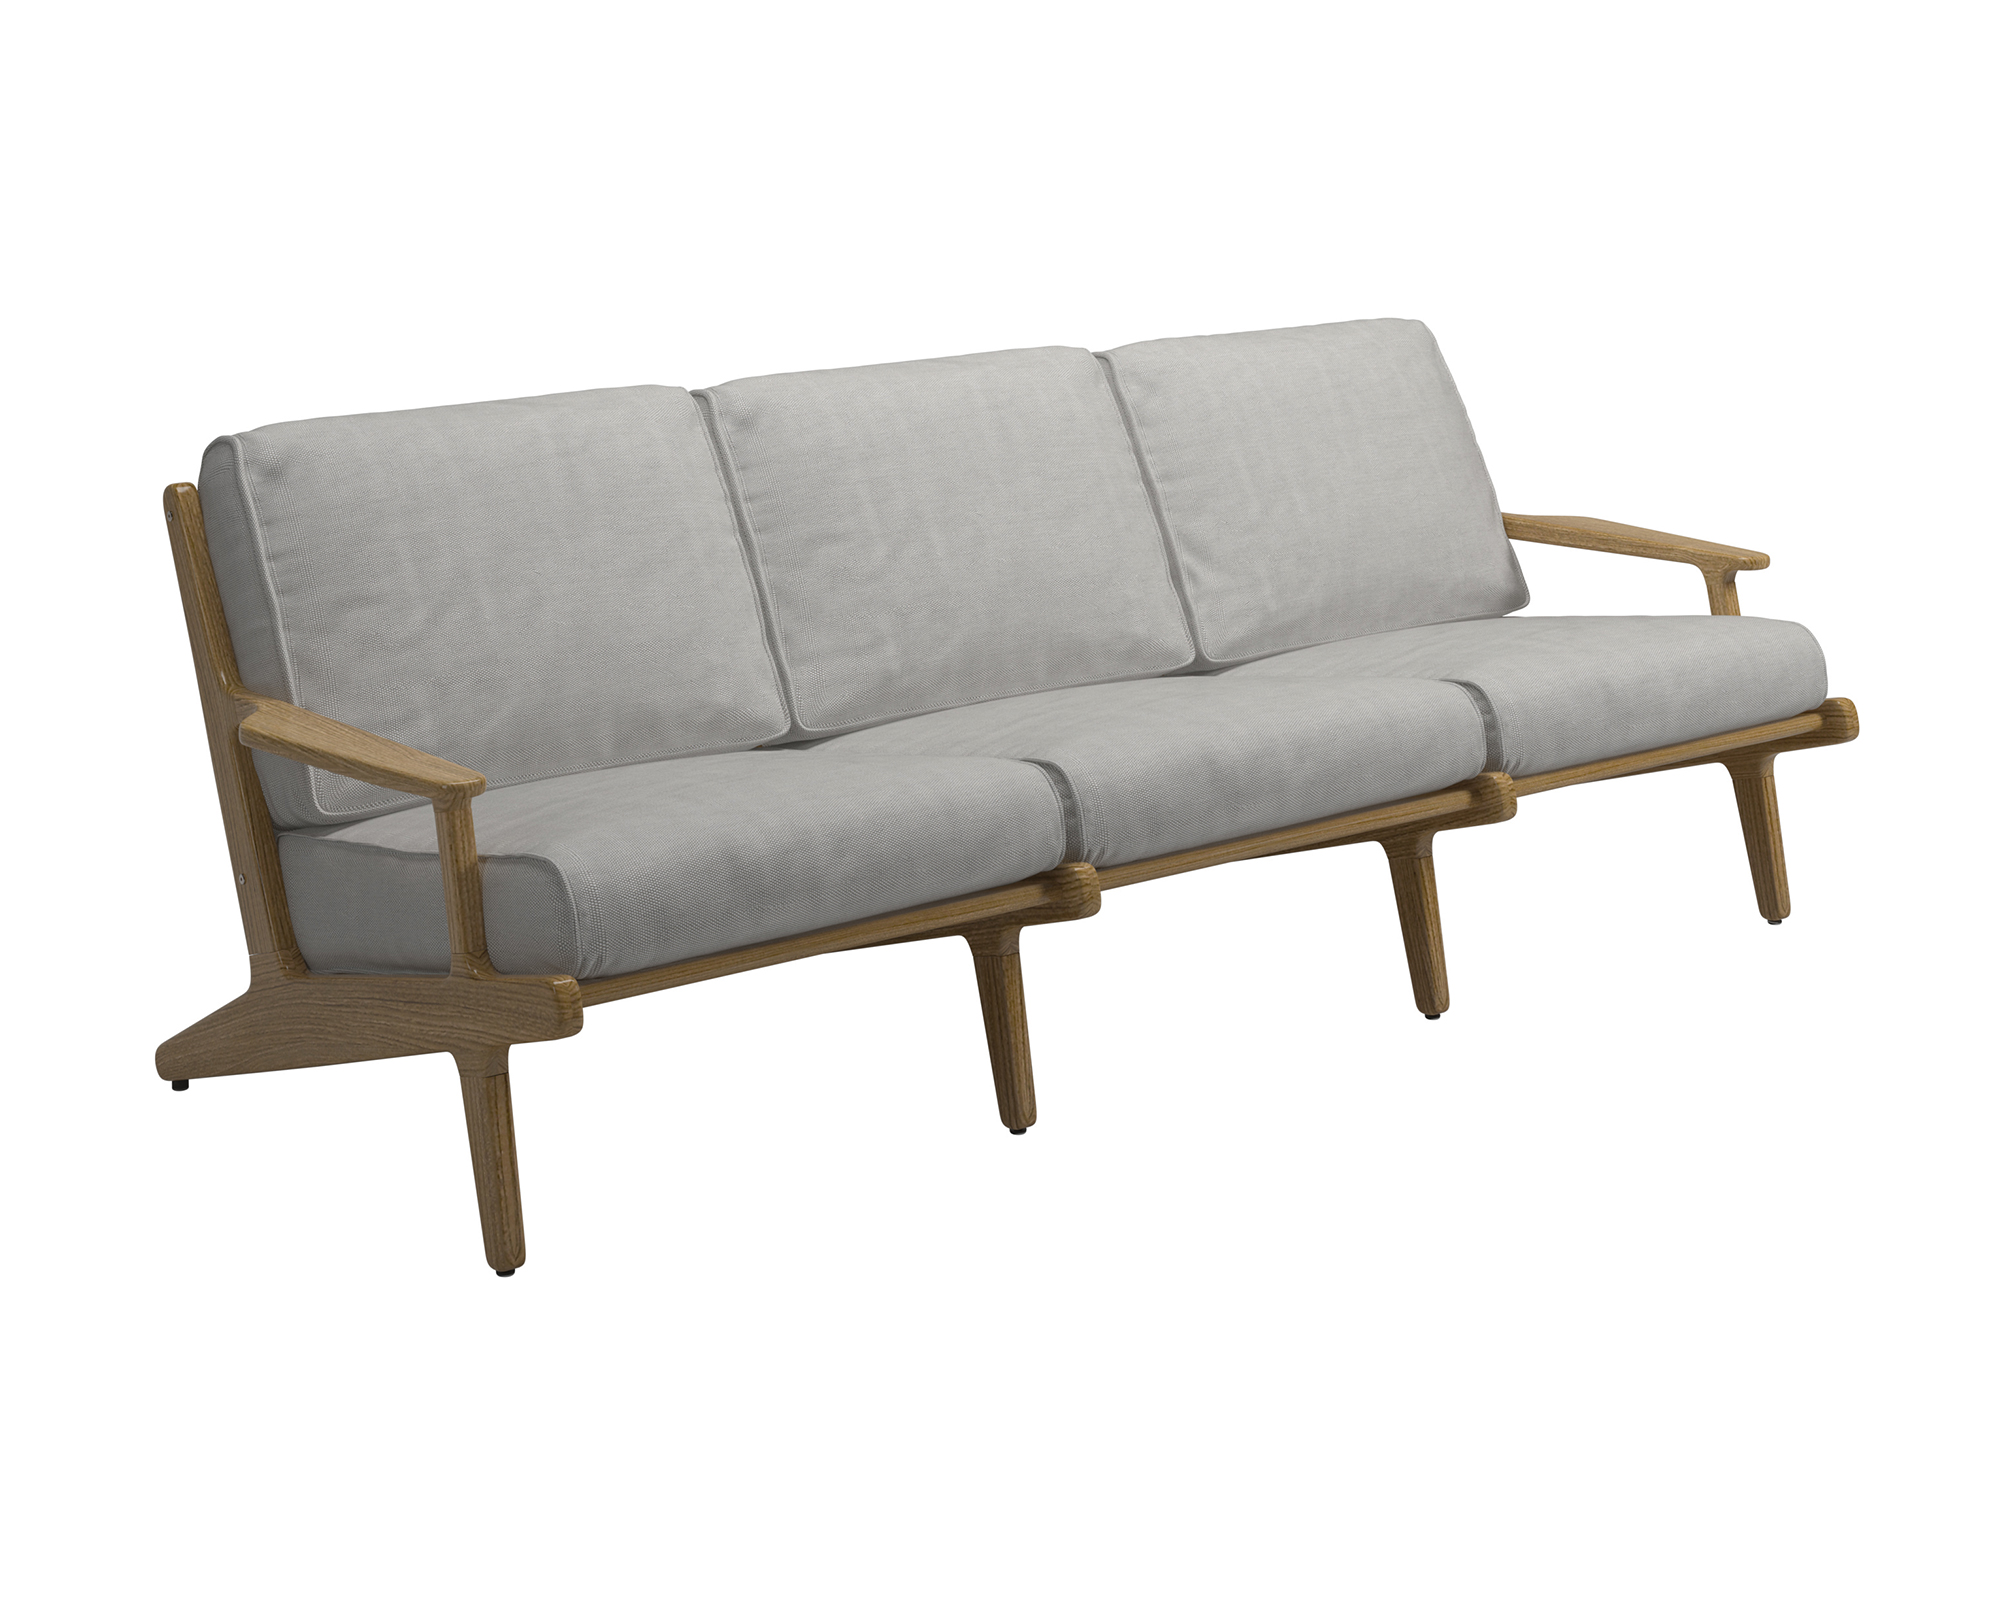 Favorit Lounge Sofa Gross BAY Gloster Online & Ausstellung | bowi.ch TH78